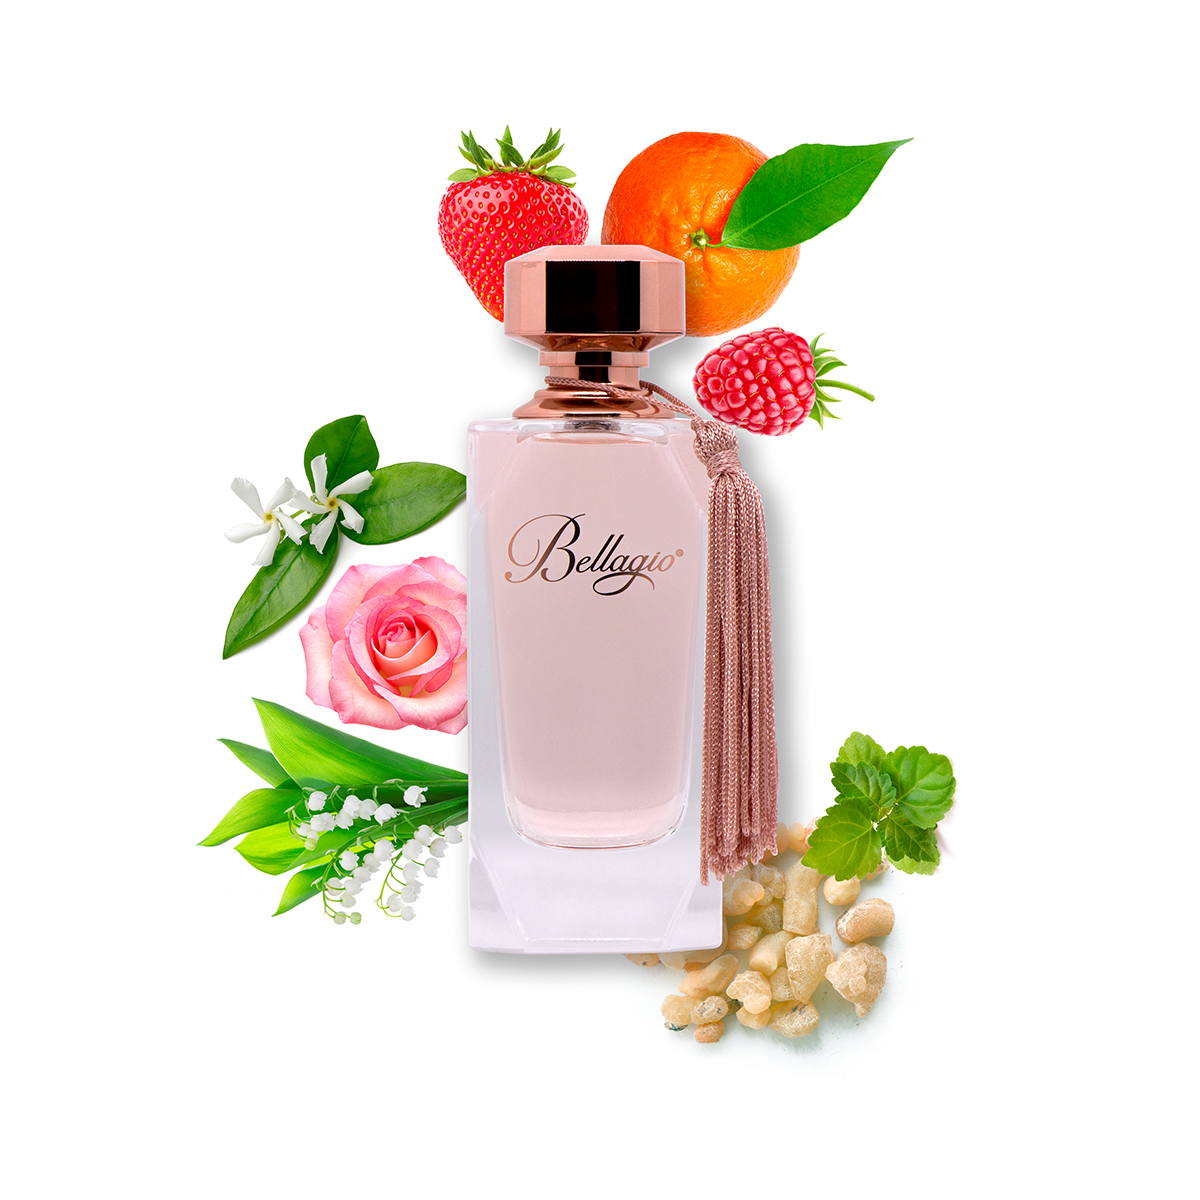 Bellagio eau de parfum